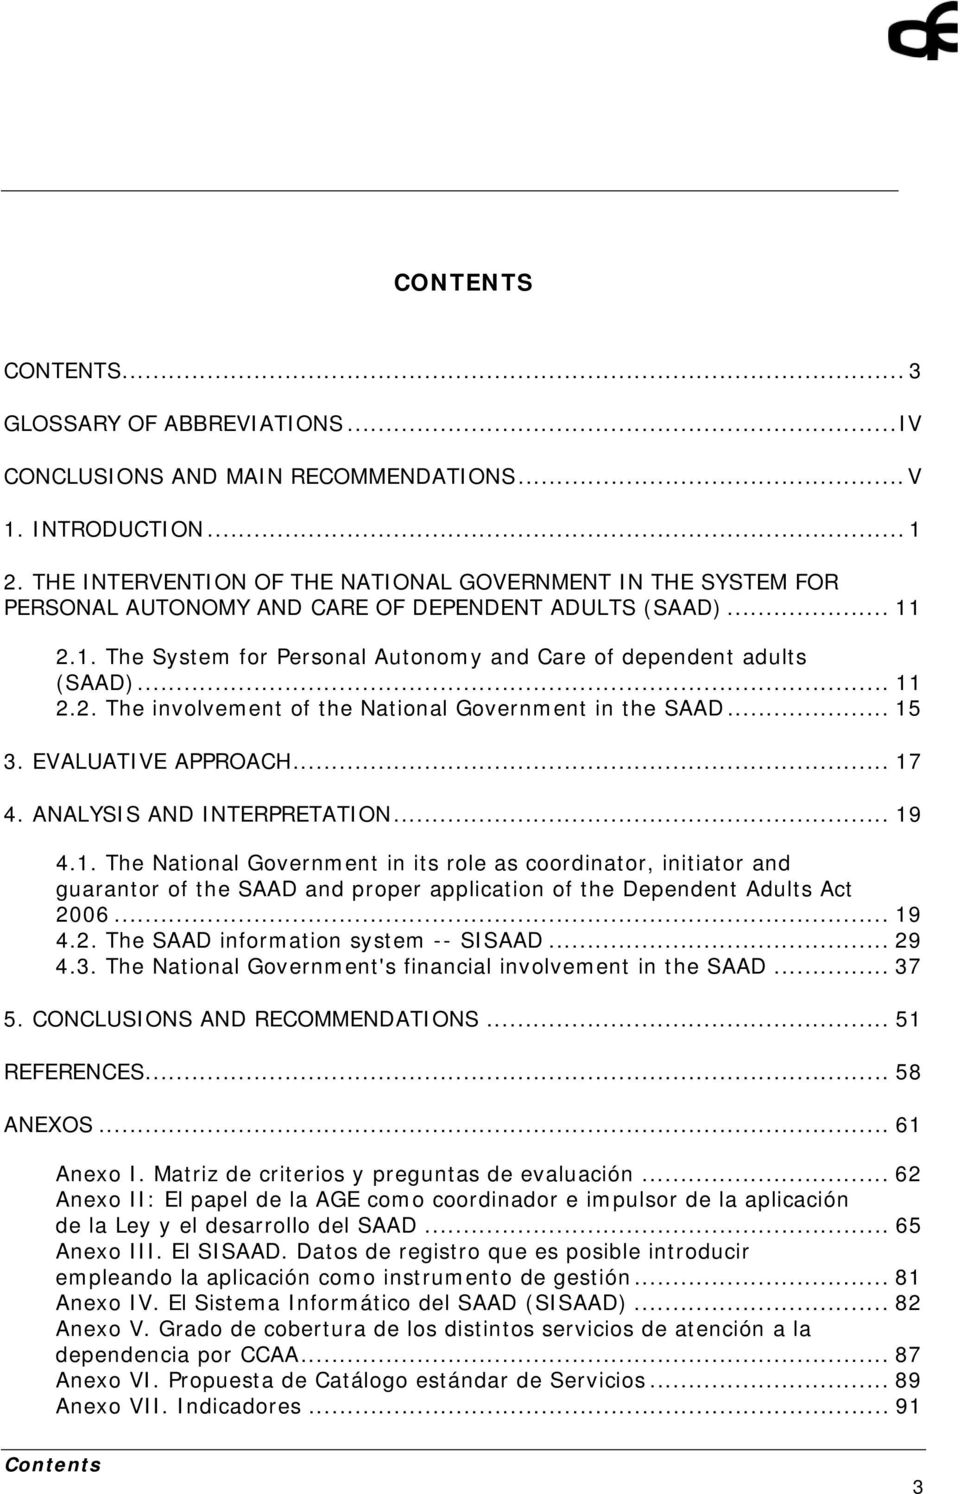 .. 11 2.2. The involvement of the National Government in the SAAD... 15 3. EVALUATIVE APPROACH... 17 4. ANALYSIS AND INTERPRETATION... 19 4.1. The National Government in its role as coordinator, initiator and guarantor of the SAAD and proper application of the Dependent Adults Act 2006.